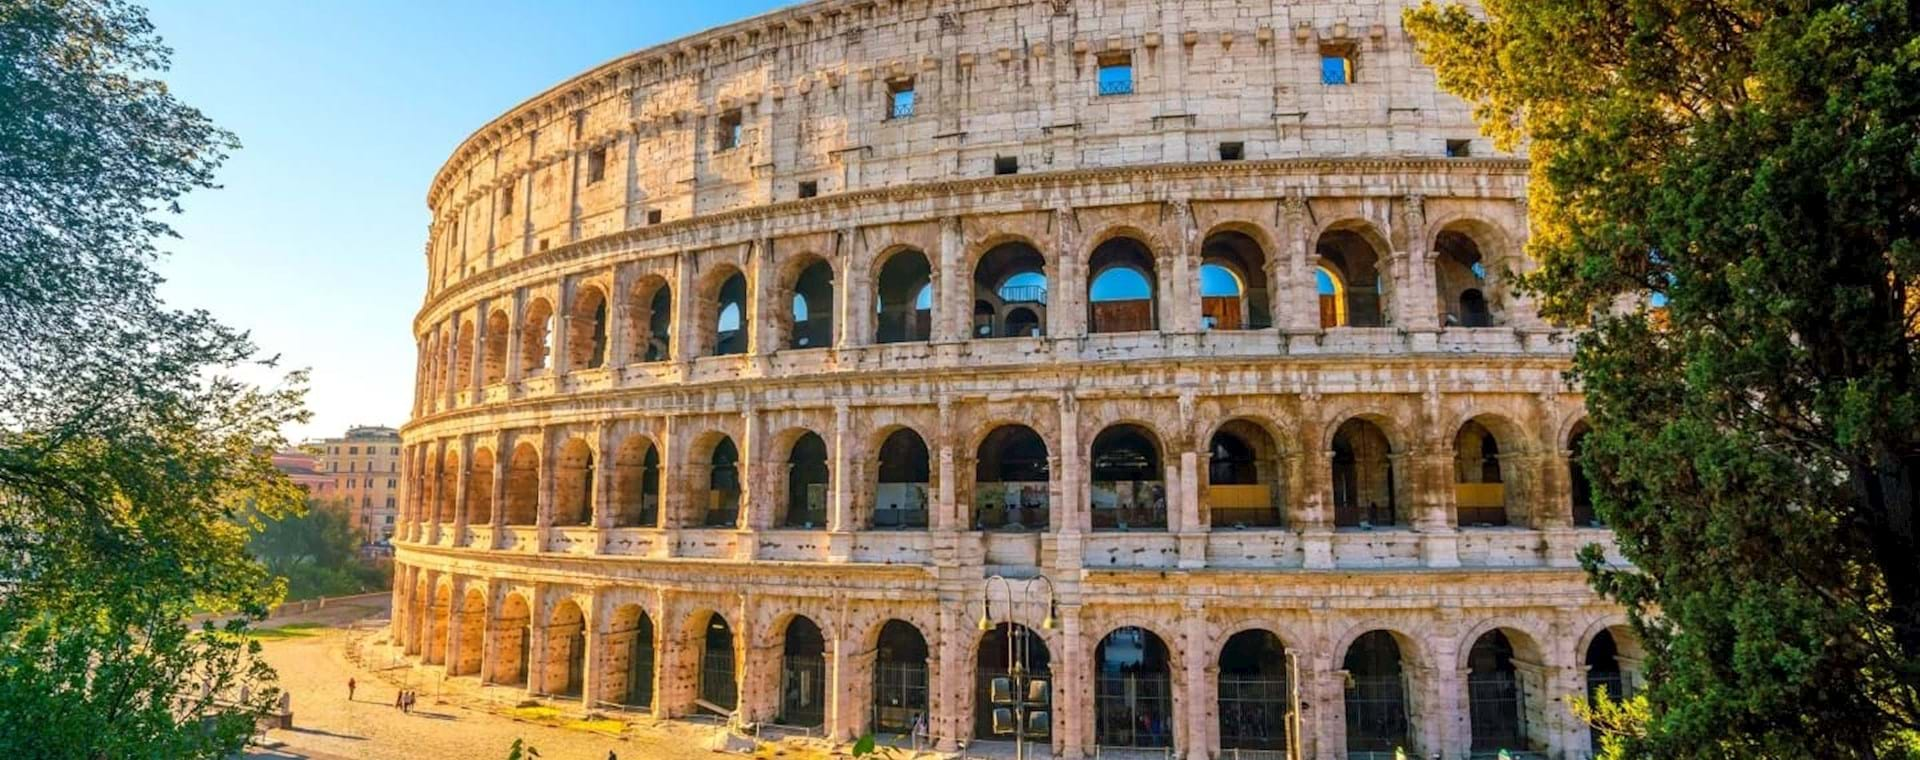 Colosseum & Ancient Rome Tour with Forum & Palatine Hill